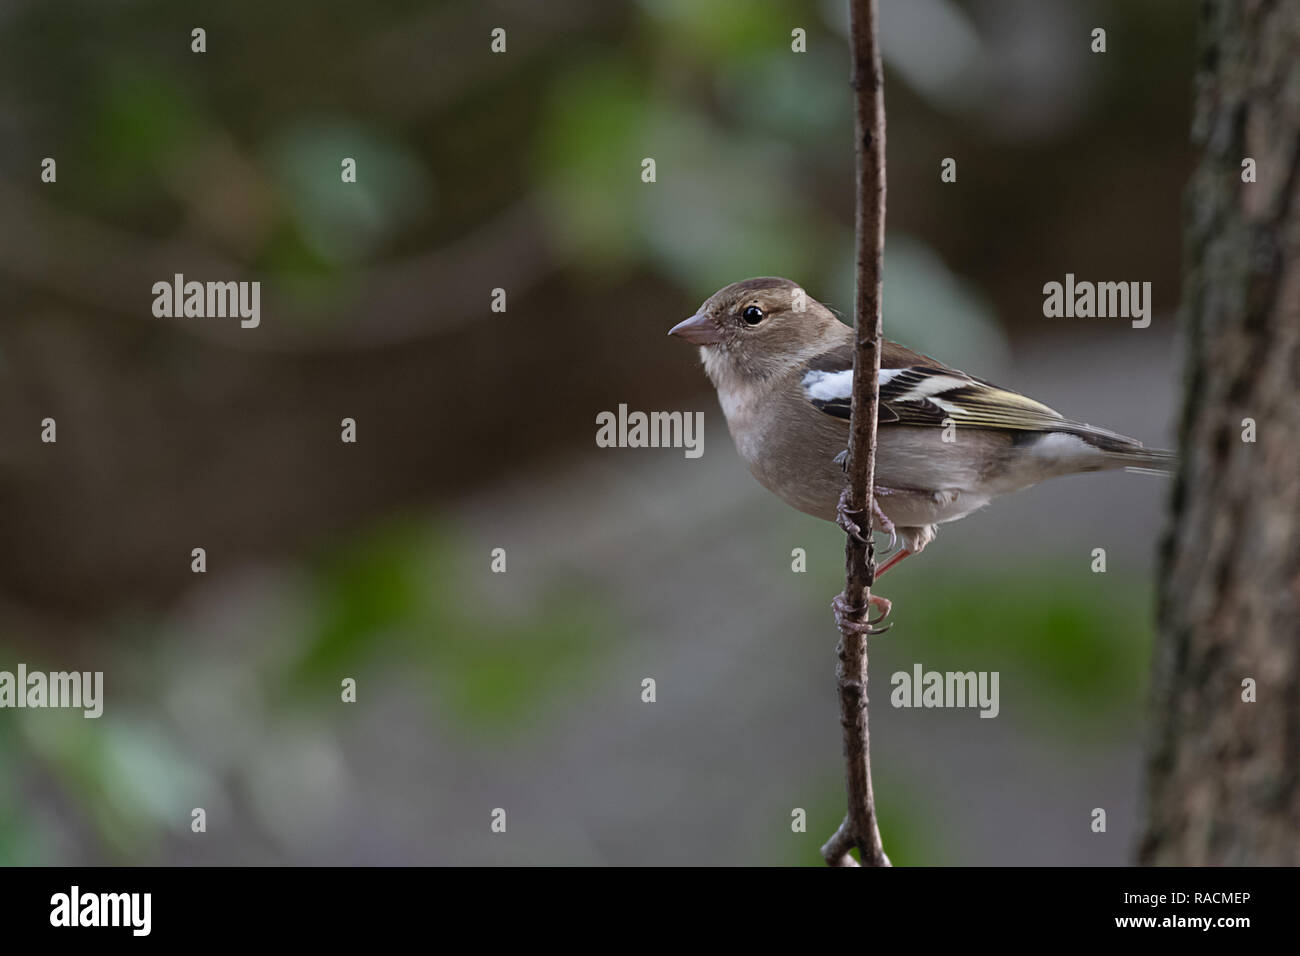 A female chaffinch sits perched on a branch in a wood. Facing to the left into open copy space is this profile portrait with catchlight in her eye - Stock Image